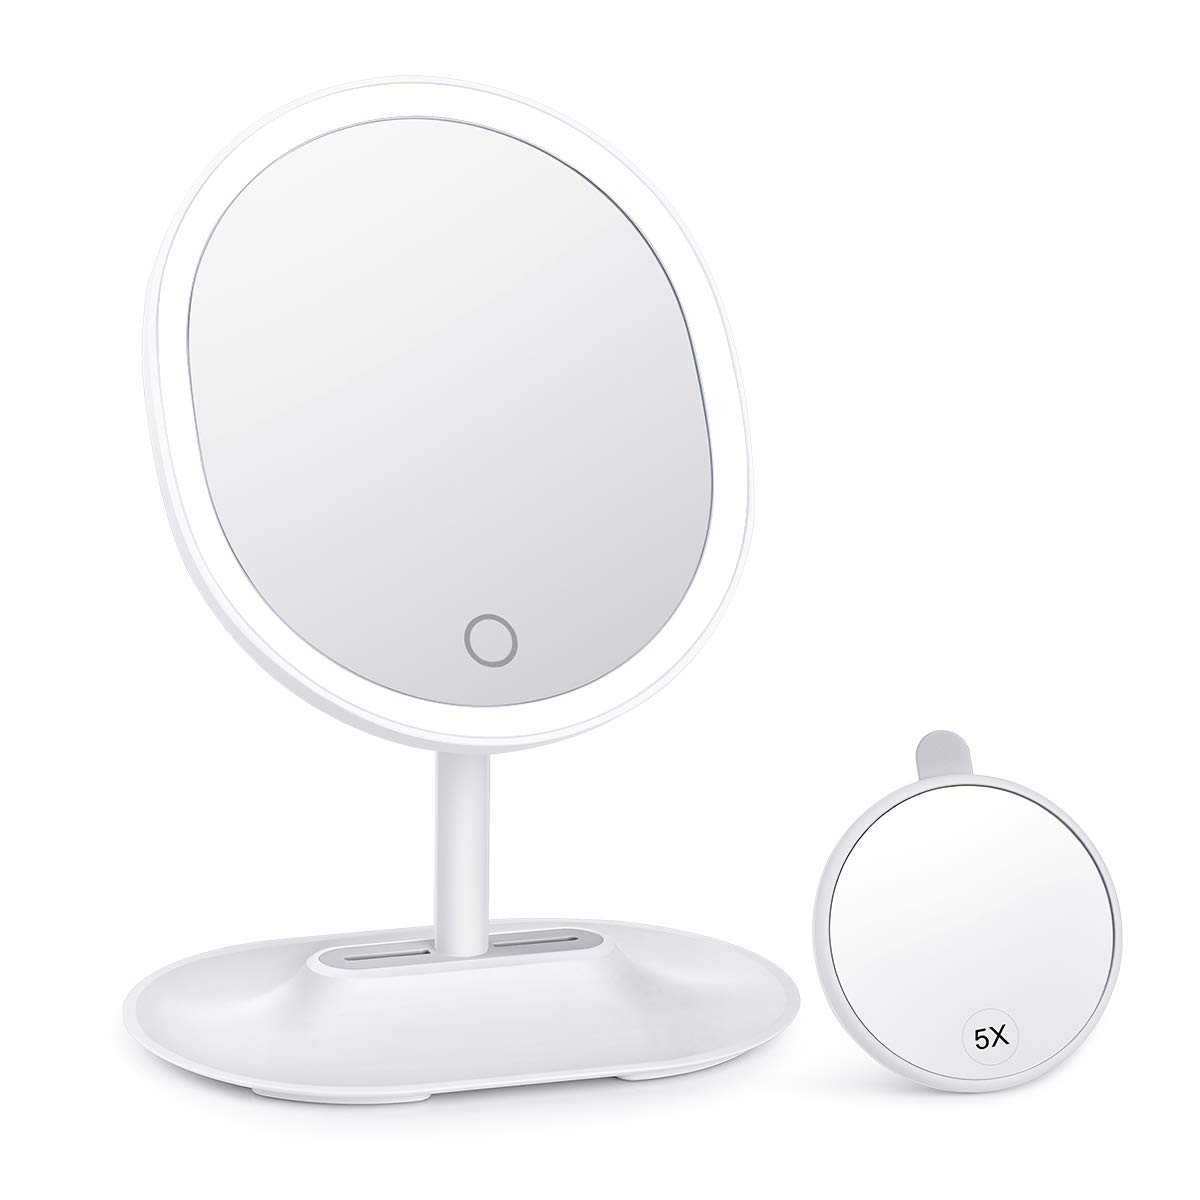 KEDSUM 1X/5X Lighted Magnifying Makeup Mirror, 7.9'' Dimmable Vanity Mirror with lights, Magnification Light up Mirrors with Touch Switch, 360 Degree Swivel, Battery Operated